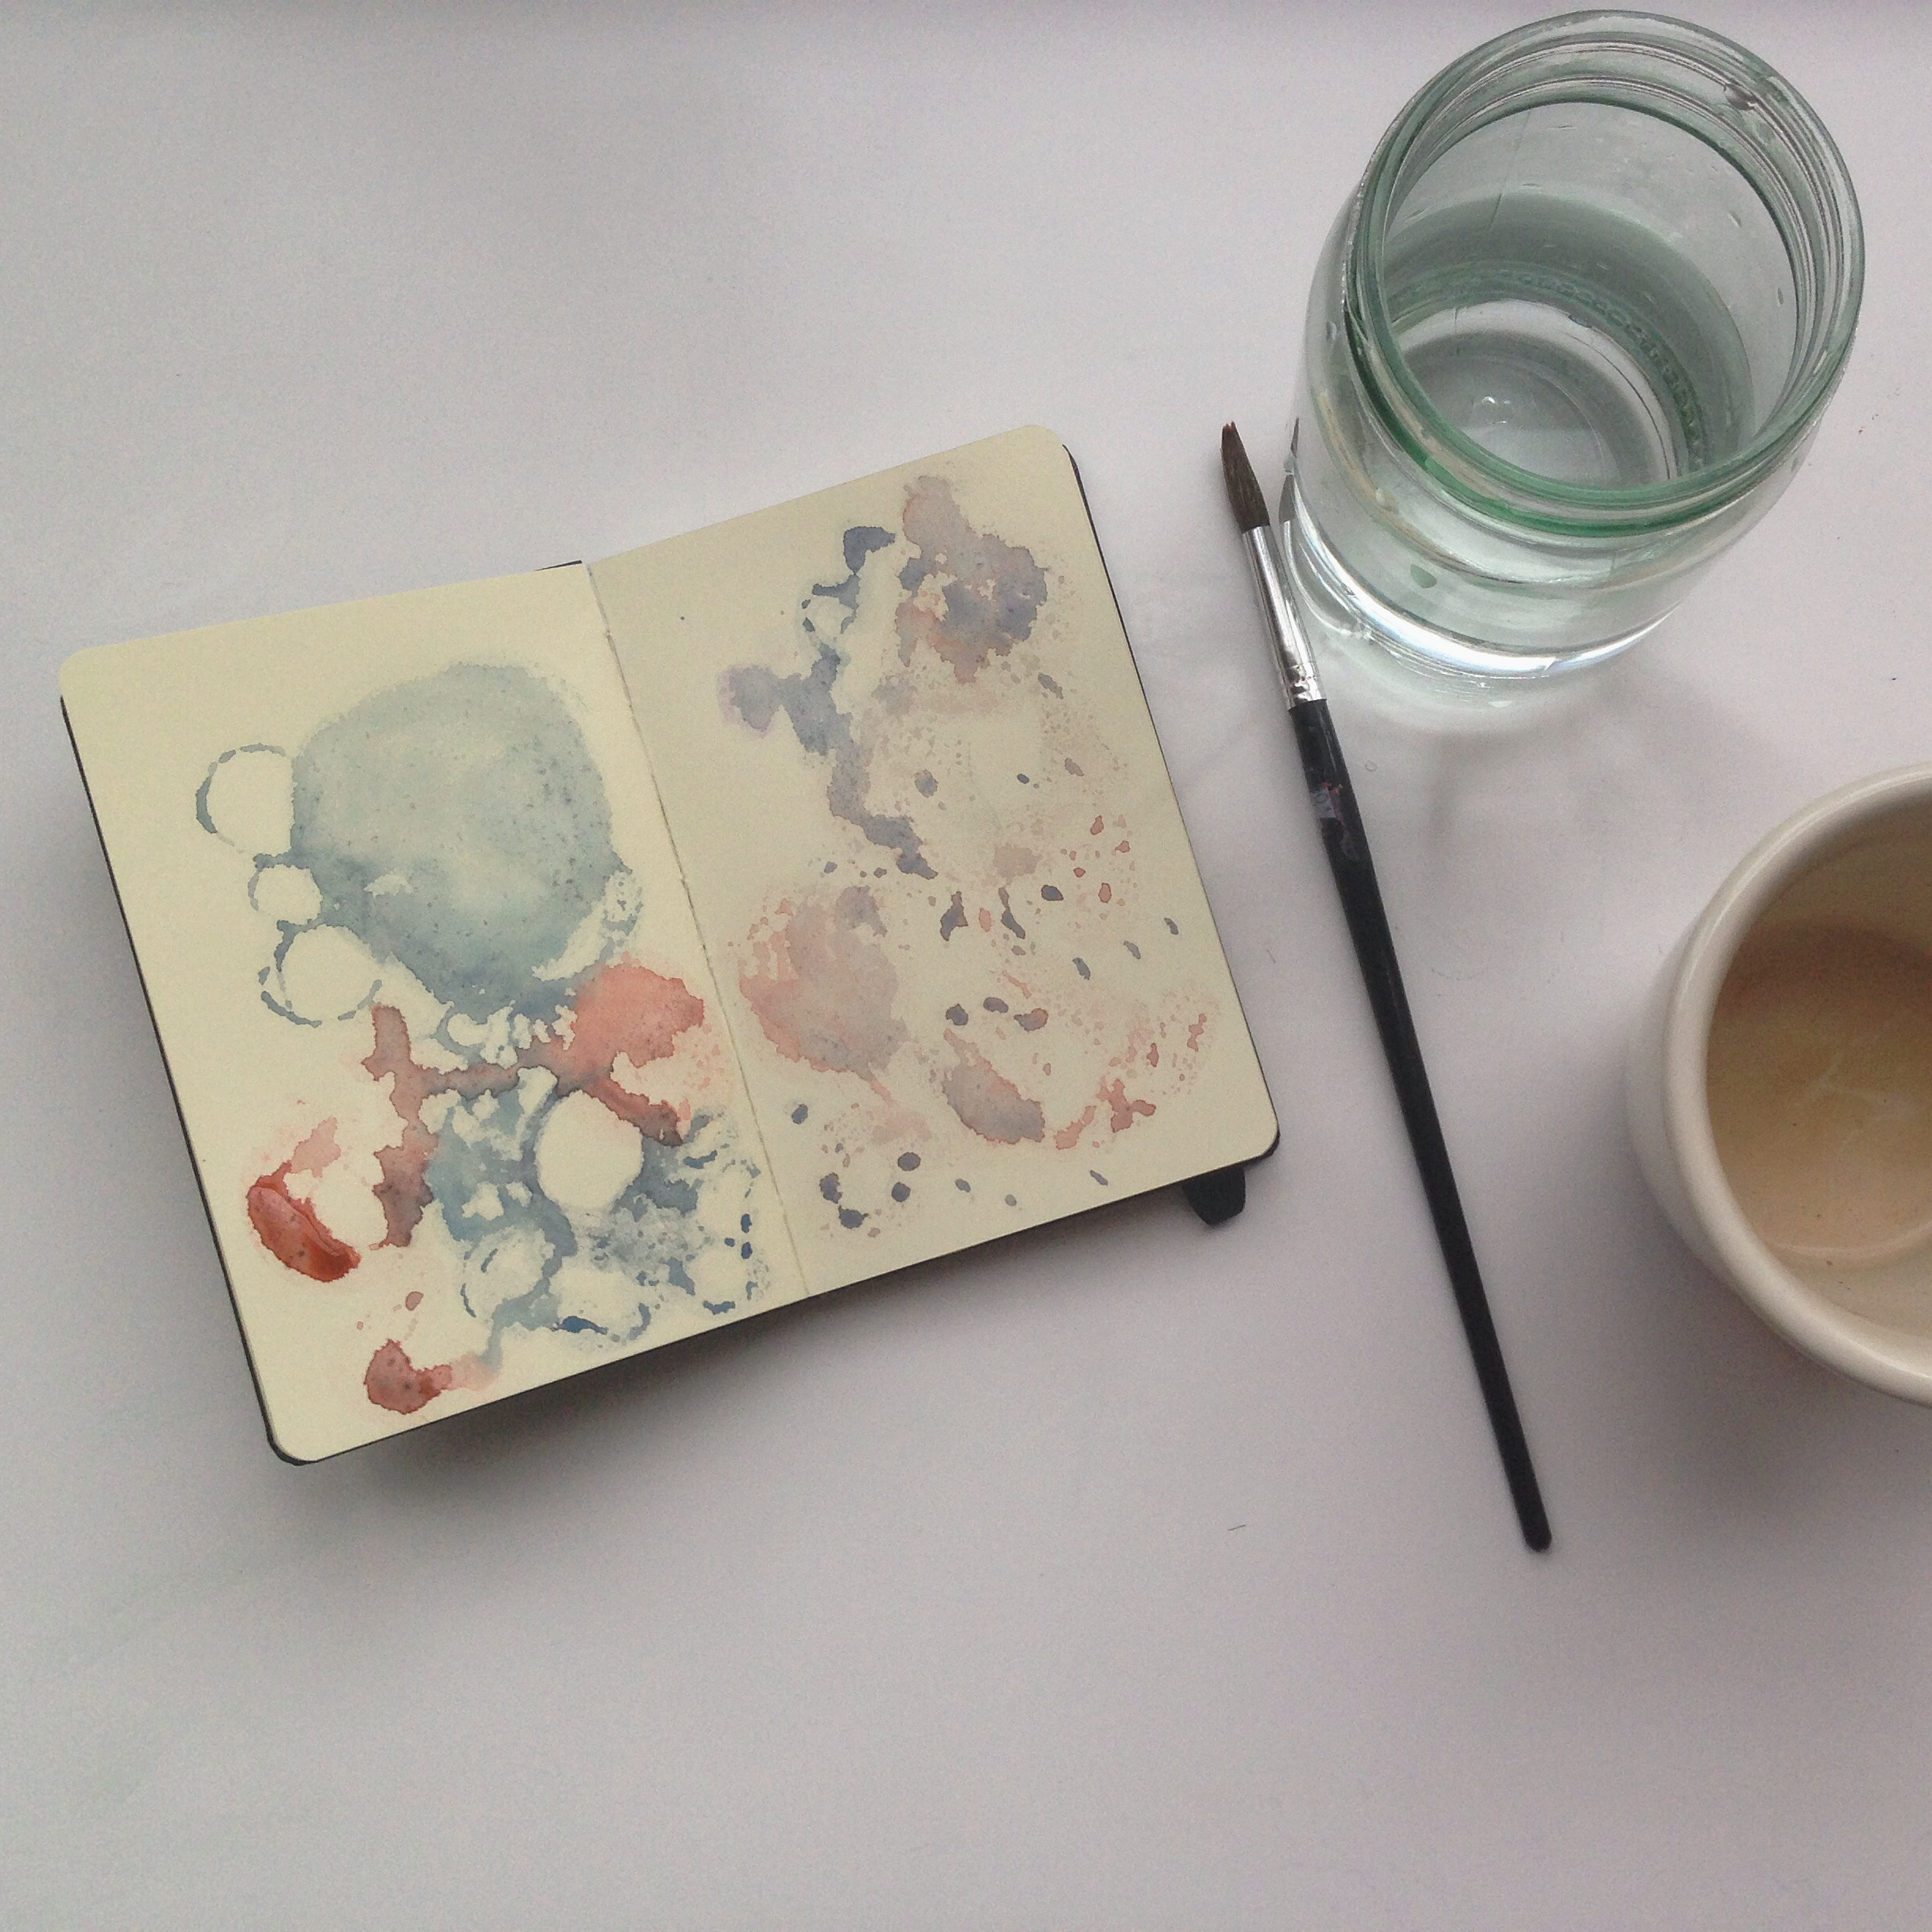 watercolor background 90/365 | year of creative habits